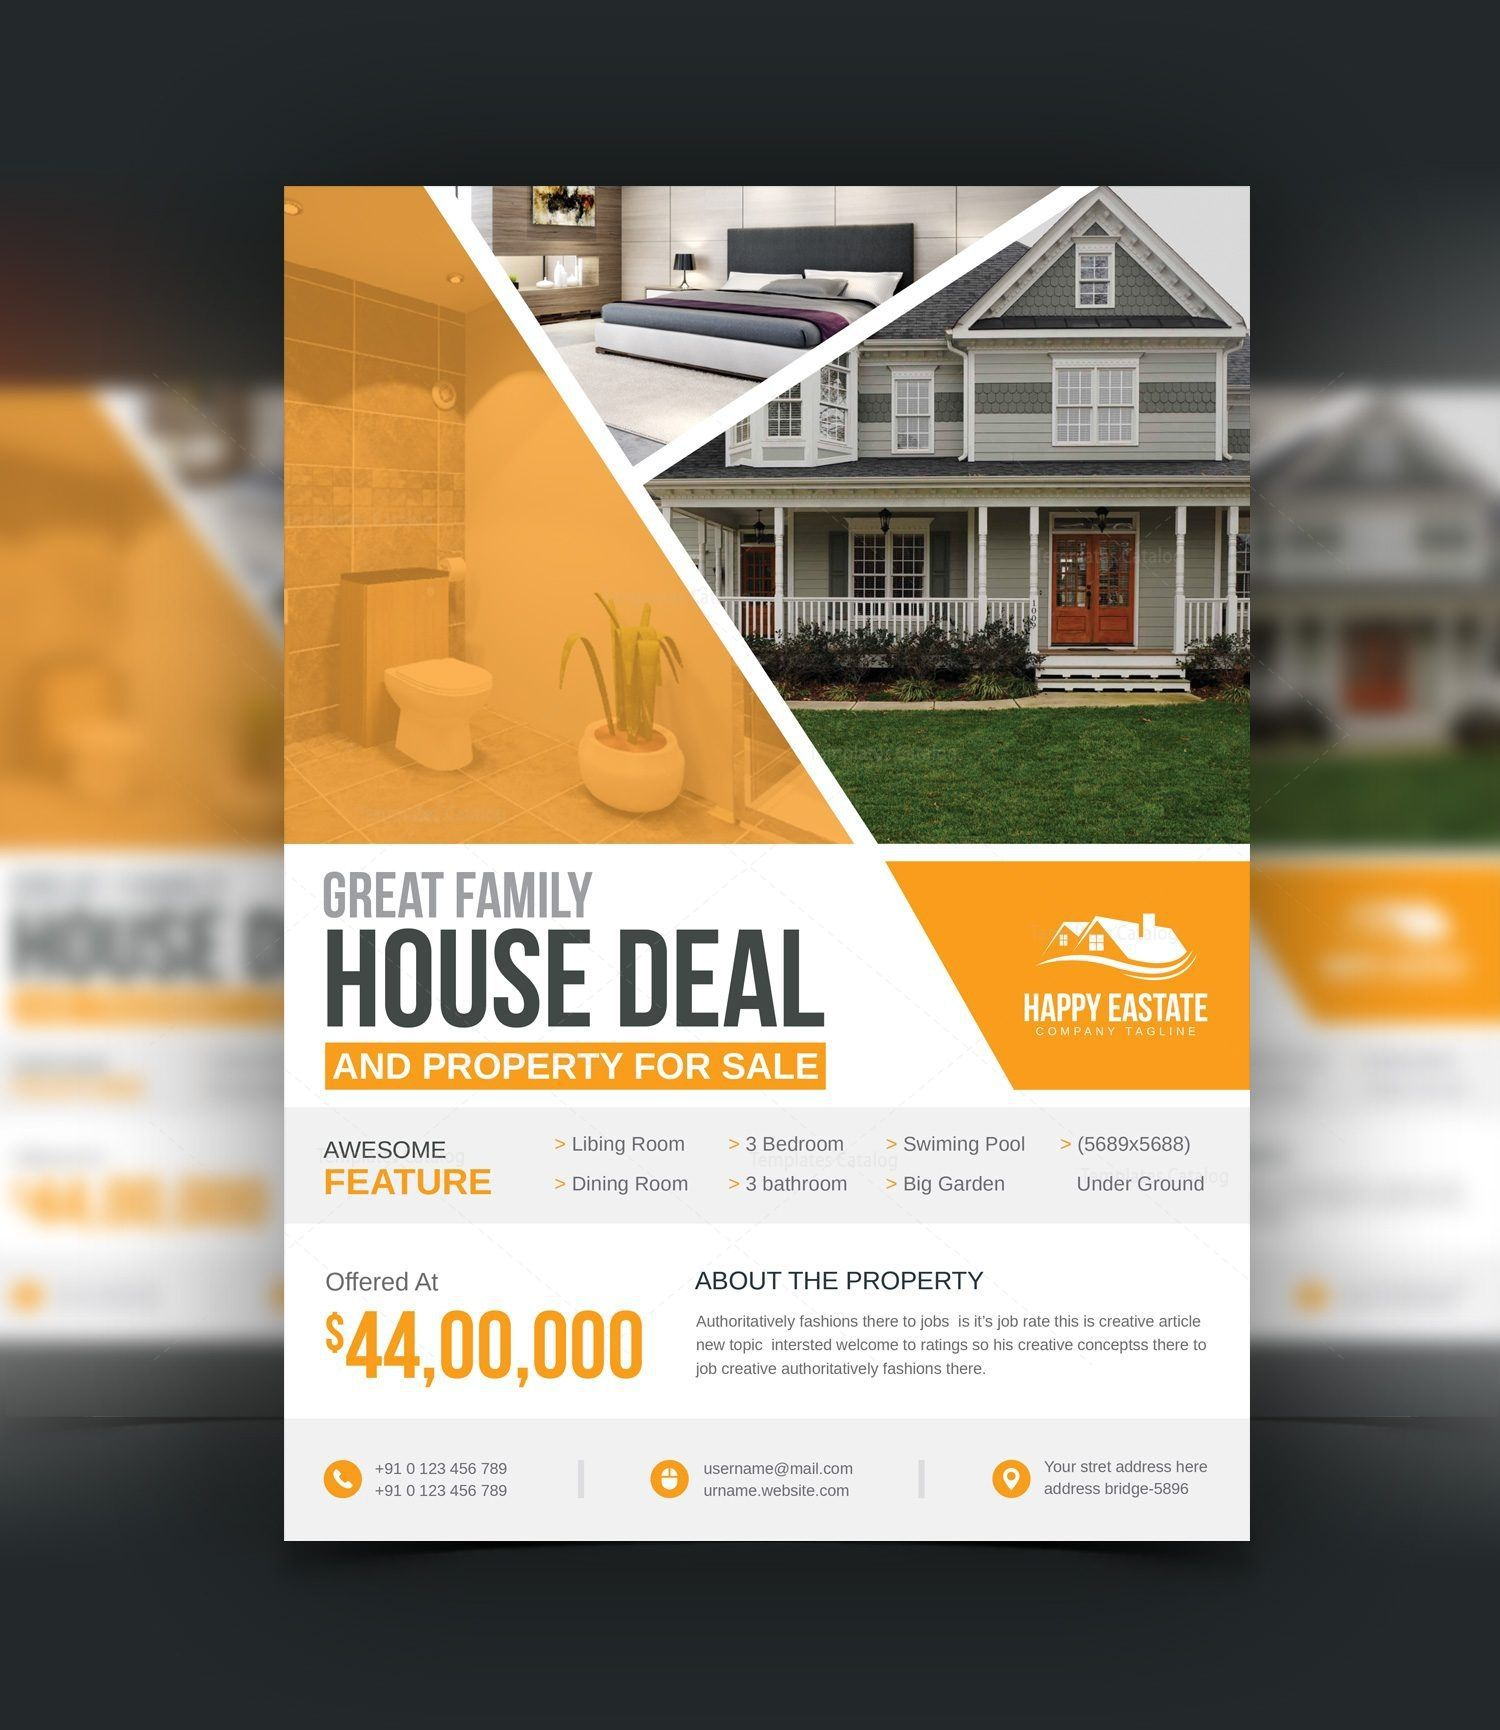 004 Awful Open House Flyer Template Highest Clarity  Templates Word Free School MicrosoftFull